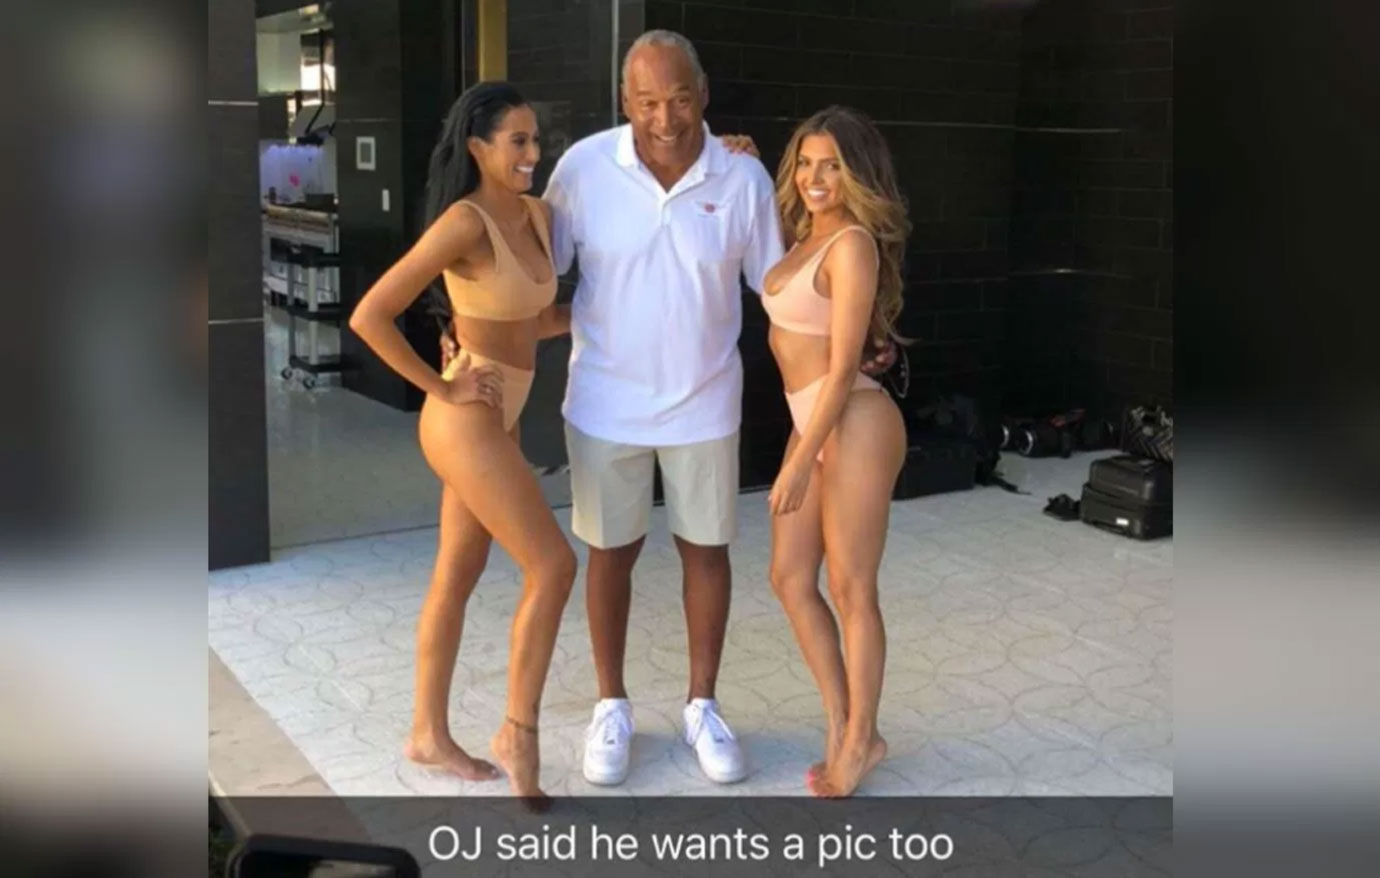 OJ SImpson bikini models photo prison feature